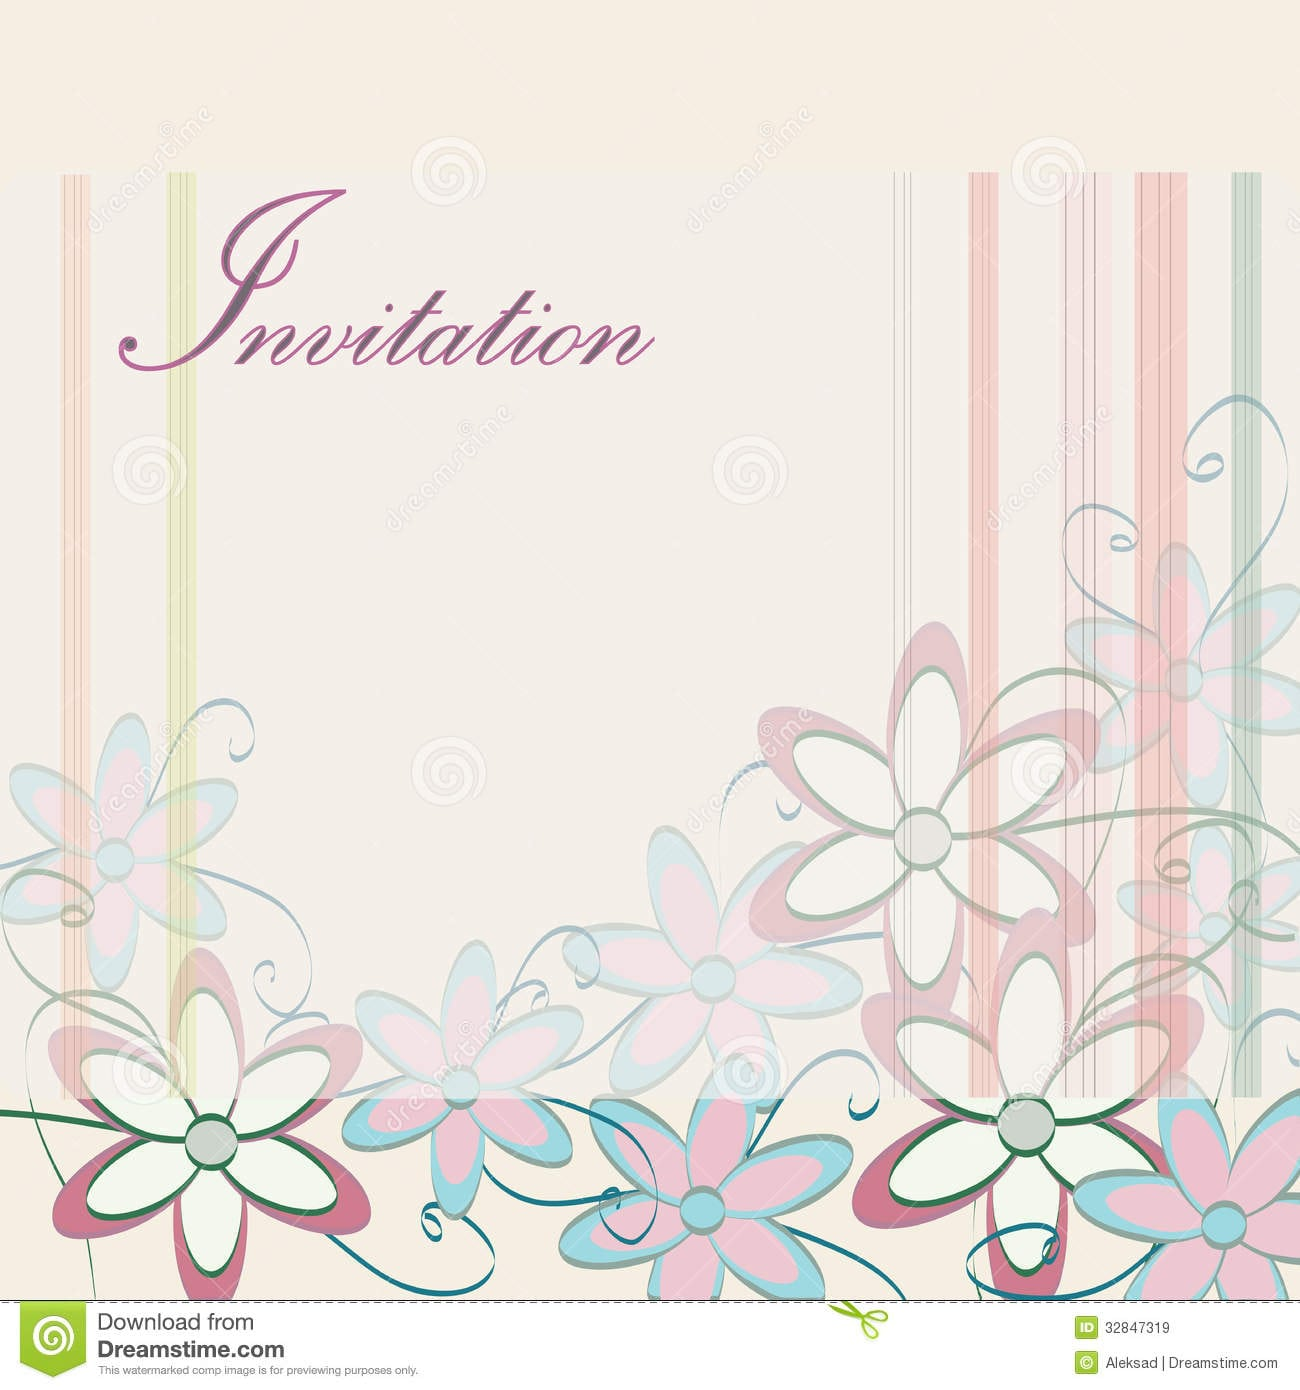 7 Fancy Party Invitation Card Template Free Download